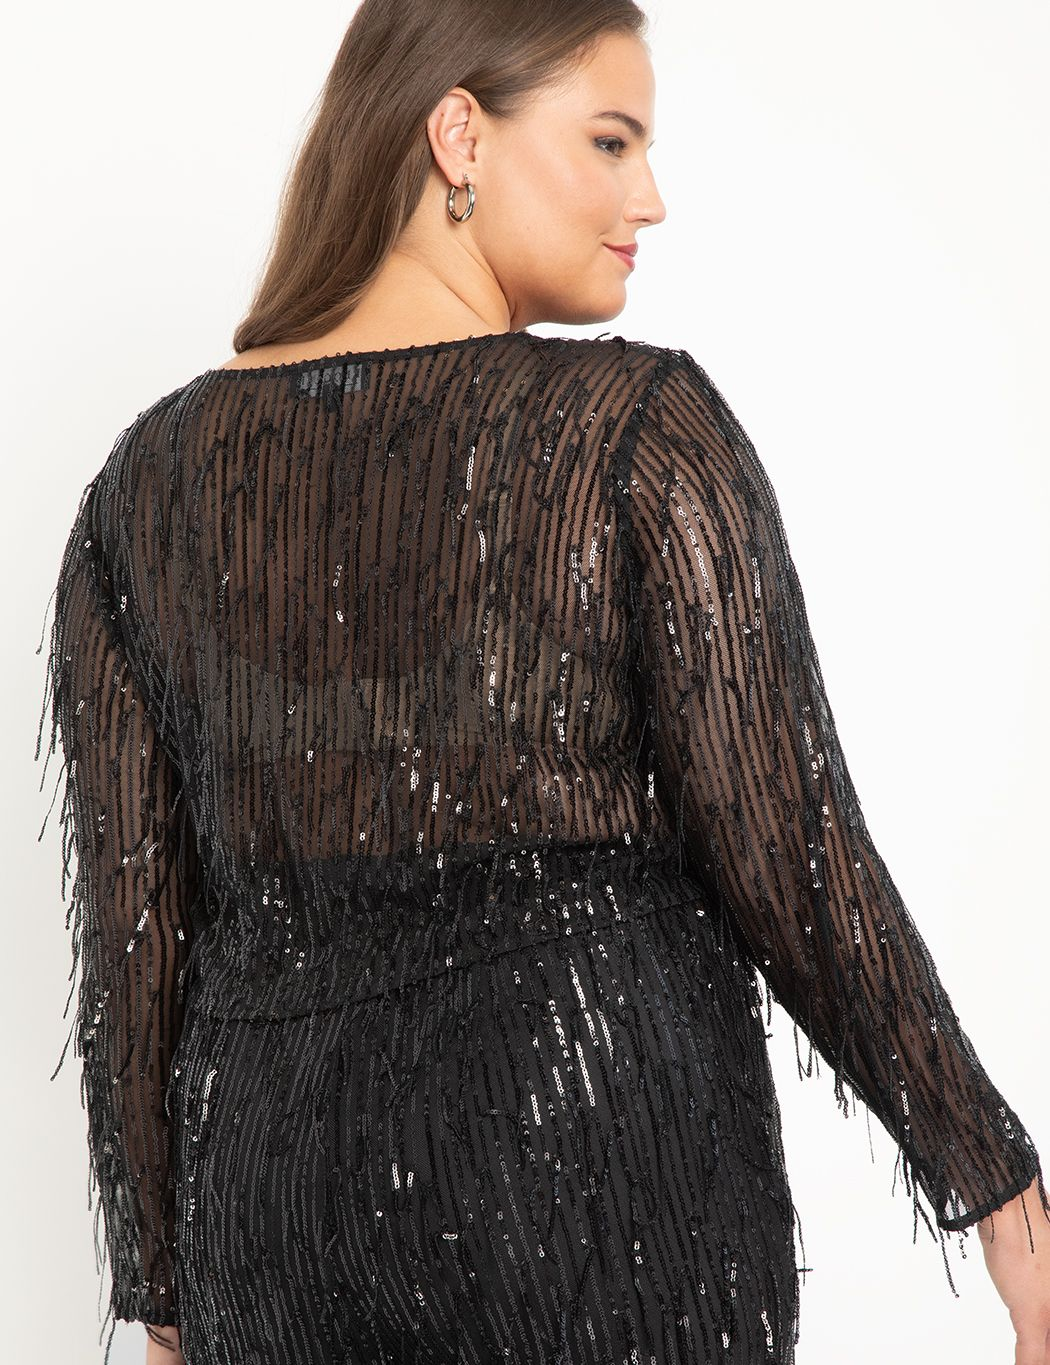 Fringe Sequin Top